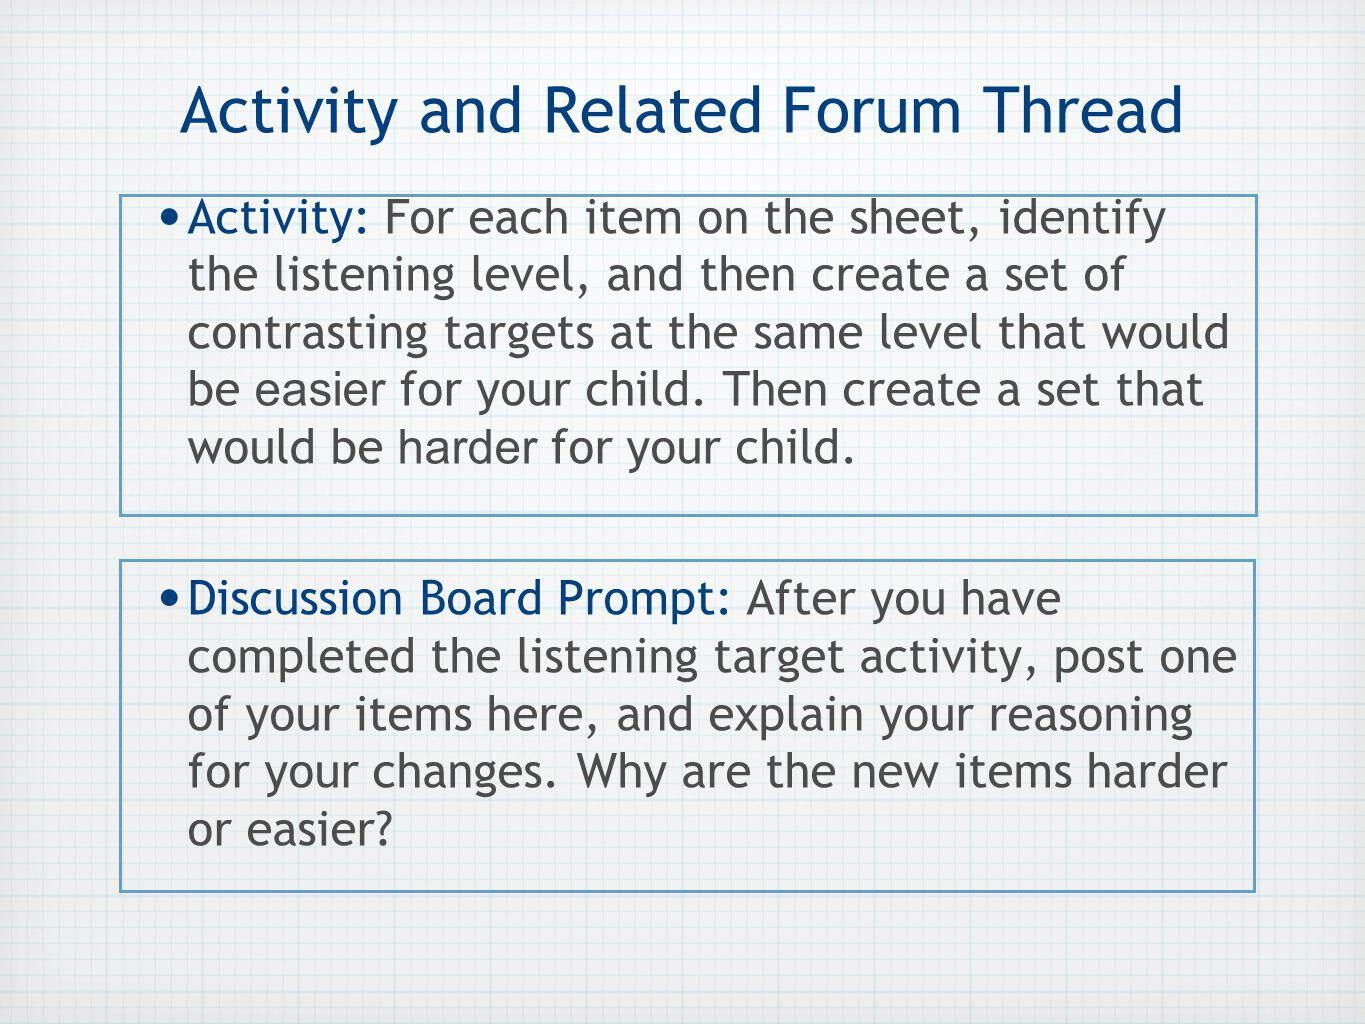 Activity and Related Forum Thread Activity: For each item on the sheet, identify the listening level, and then create a set of contrasting targets at the same level that would be easier for your child.